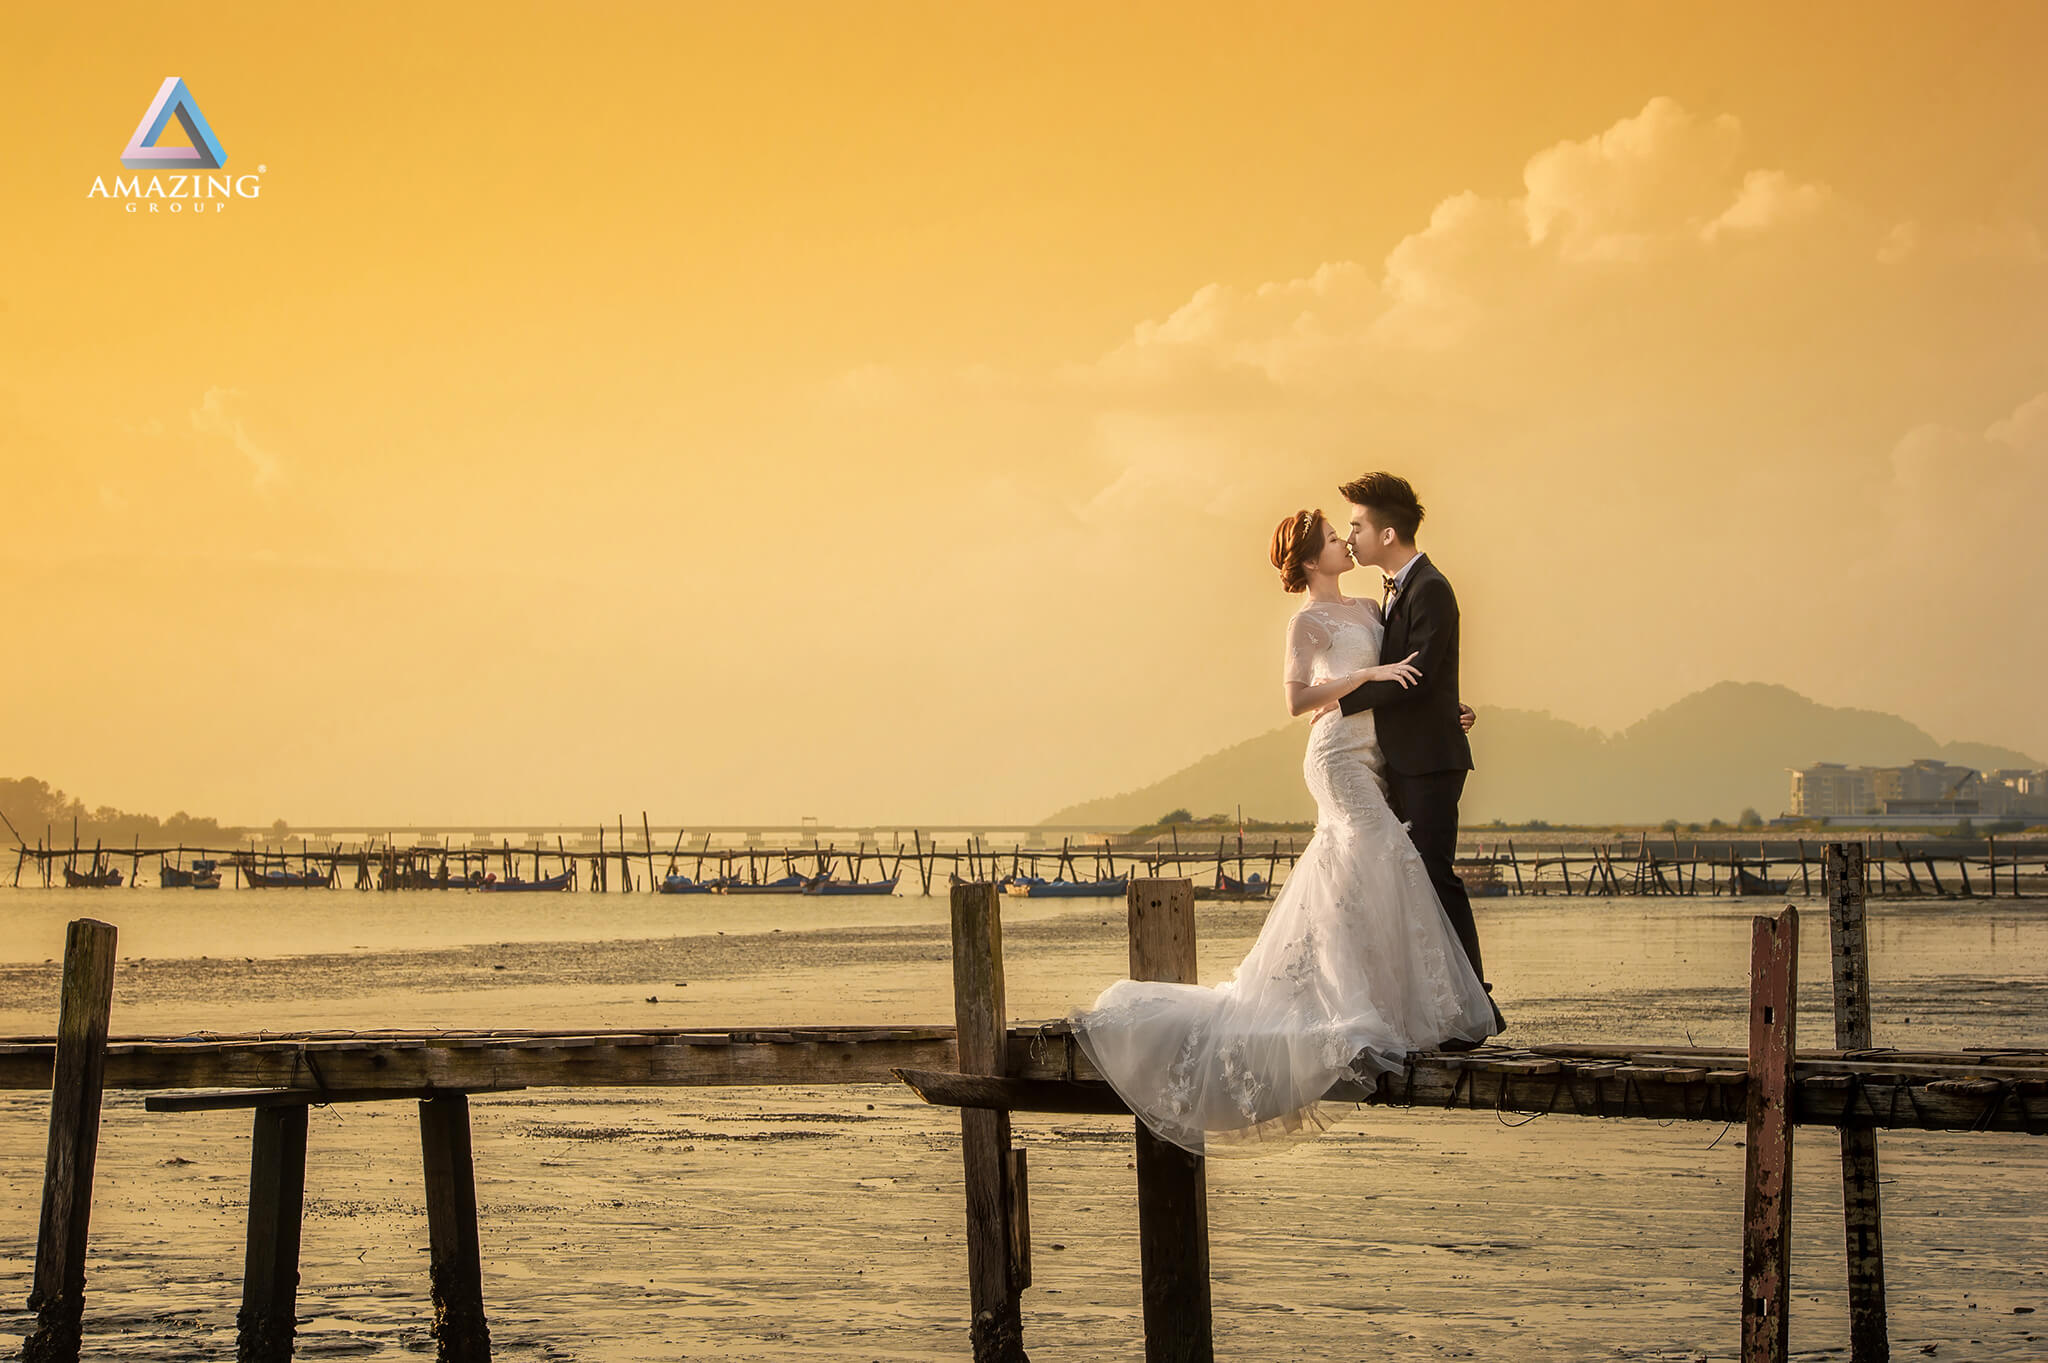 The Pre-Wedding Album of Jiafu & Ziyo